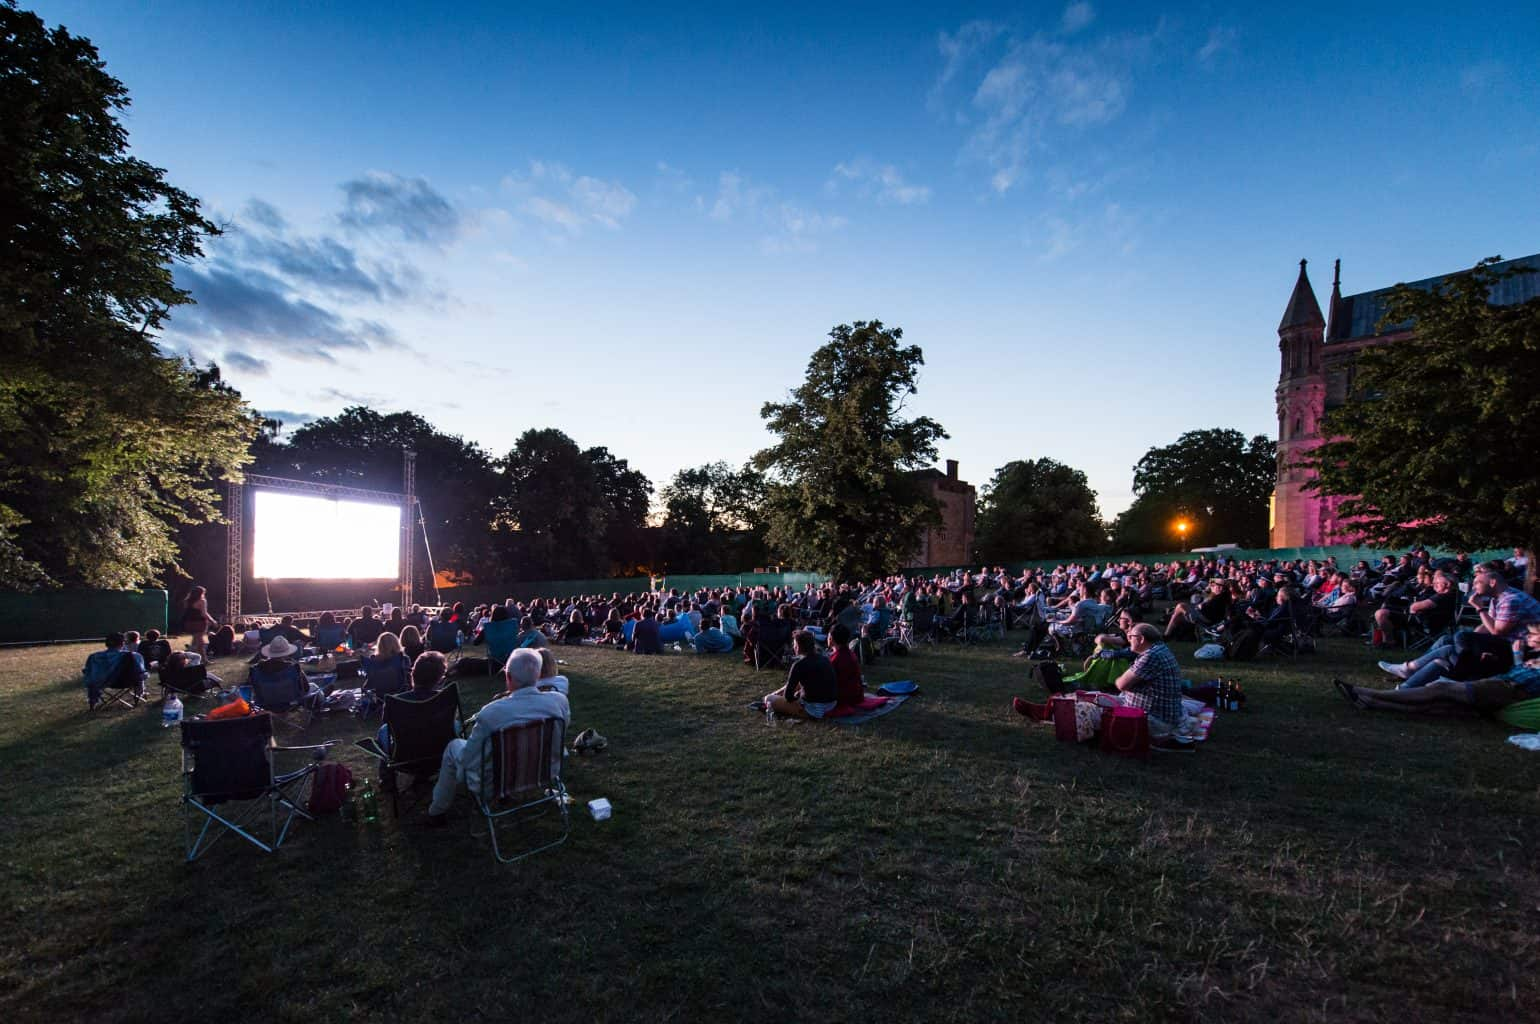 St. Albans Film Festival 2017 - Outdoor Cinema Vortex Events